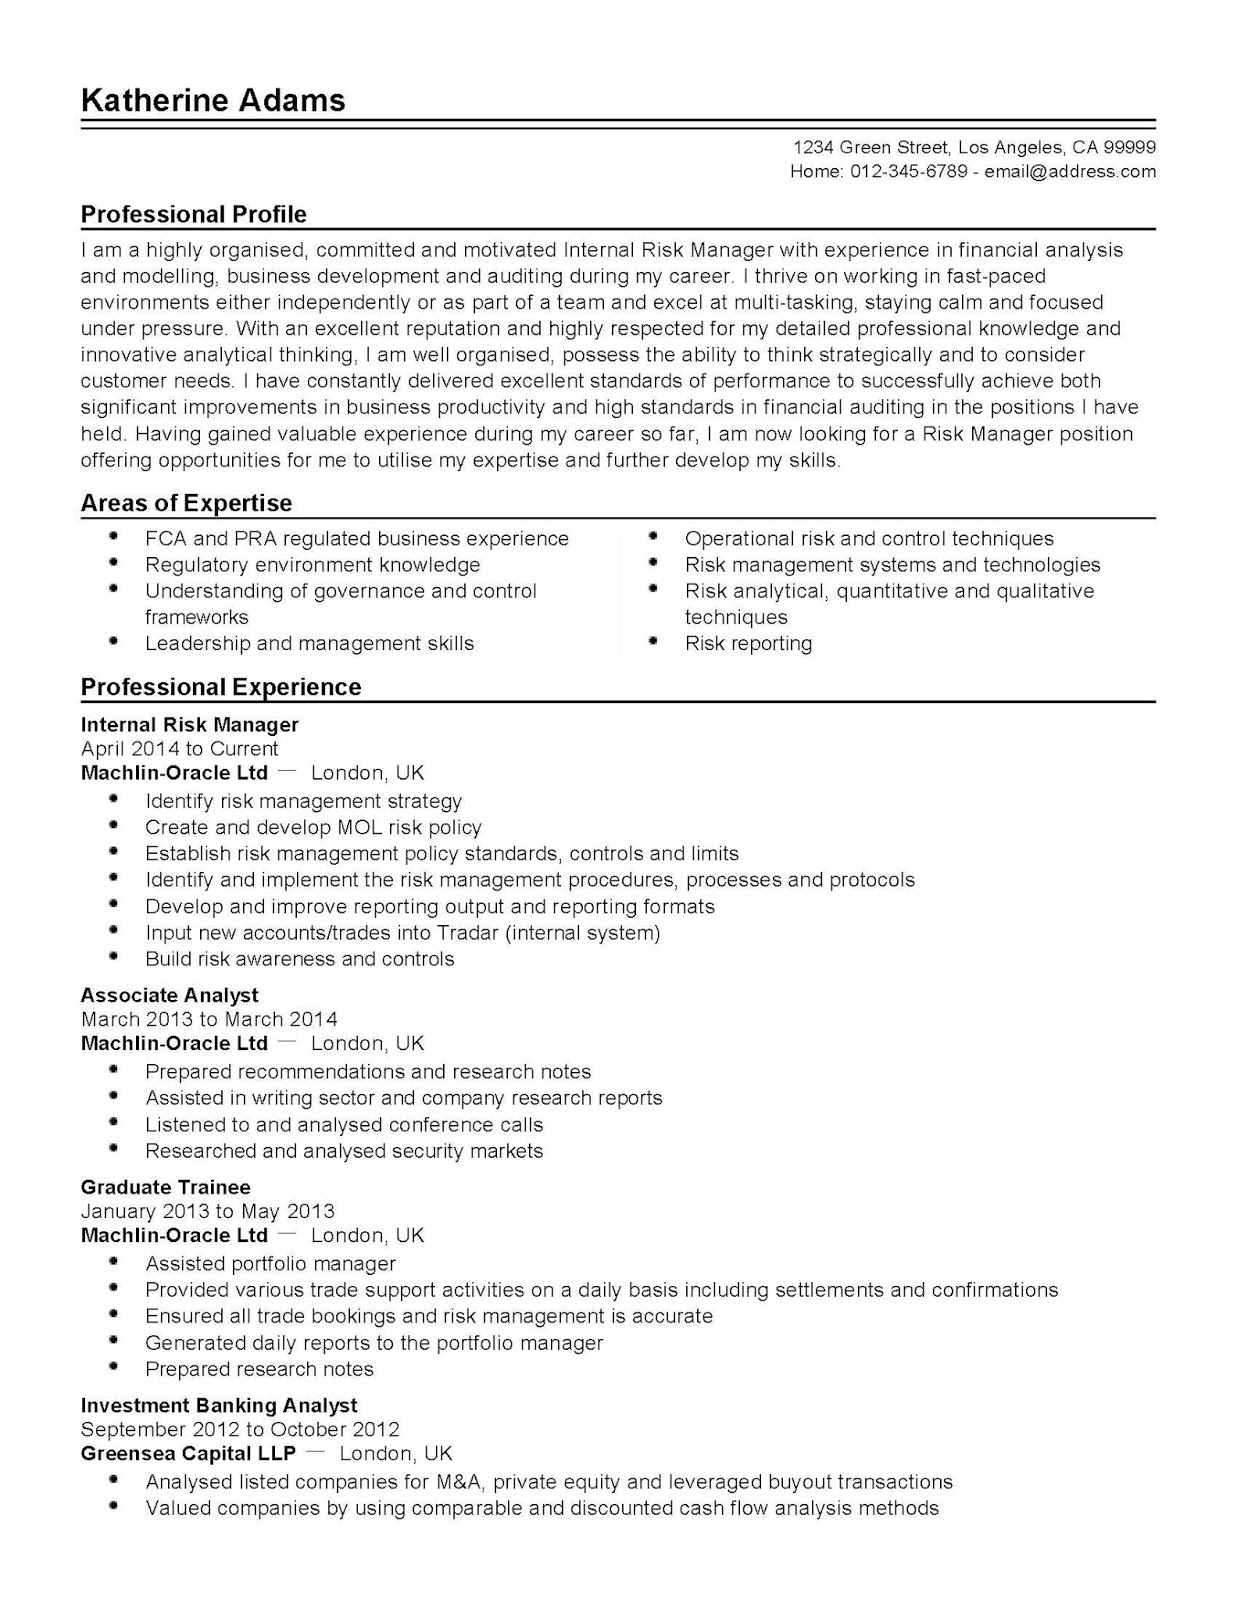 Safety Director Resume Summary 2019 safety director resume example 2019 safety director resume template 2019 safety director resume objective fire safety director resume construction safety director resume food safety director resume corporate